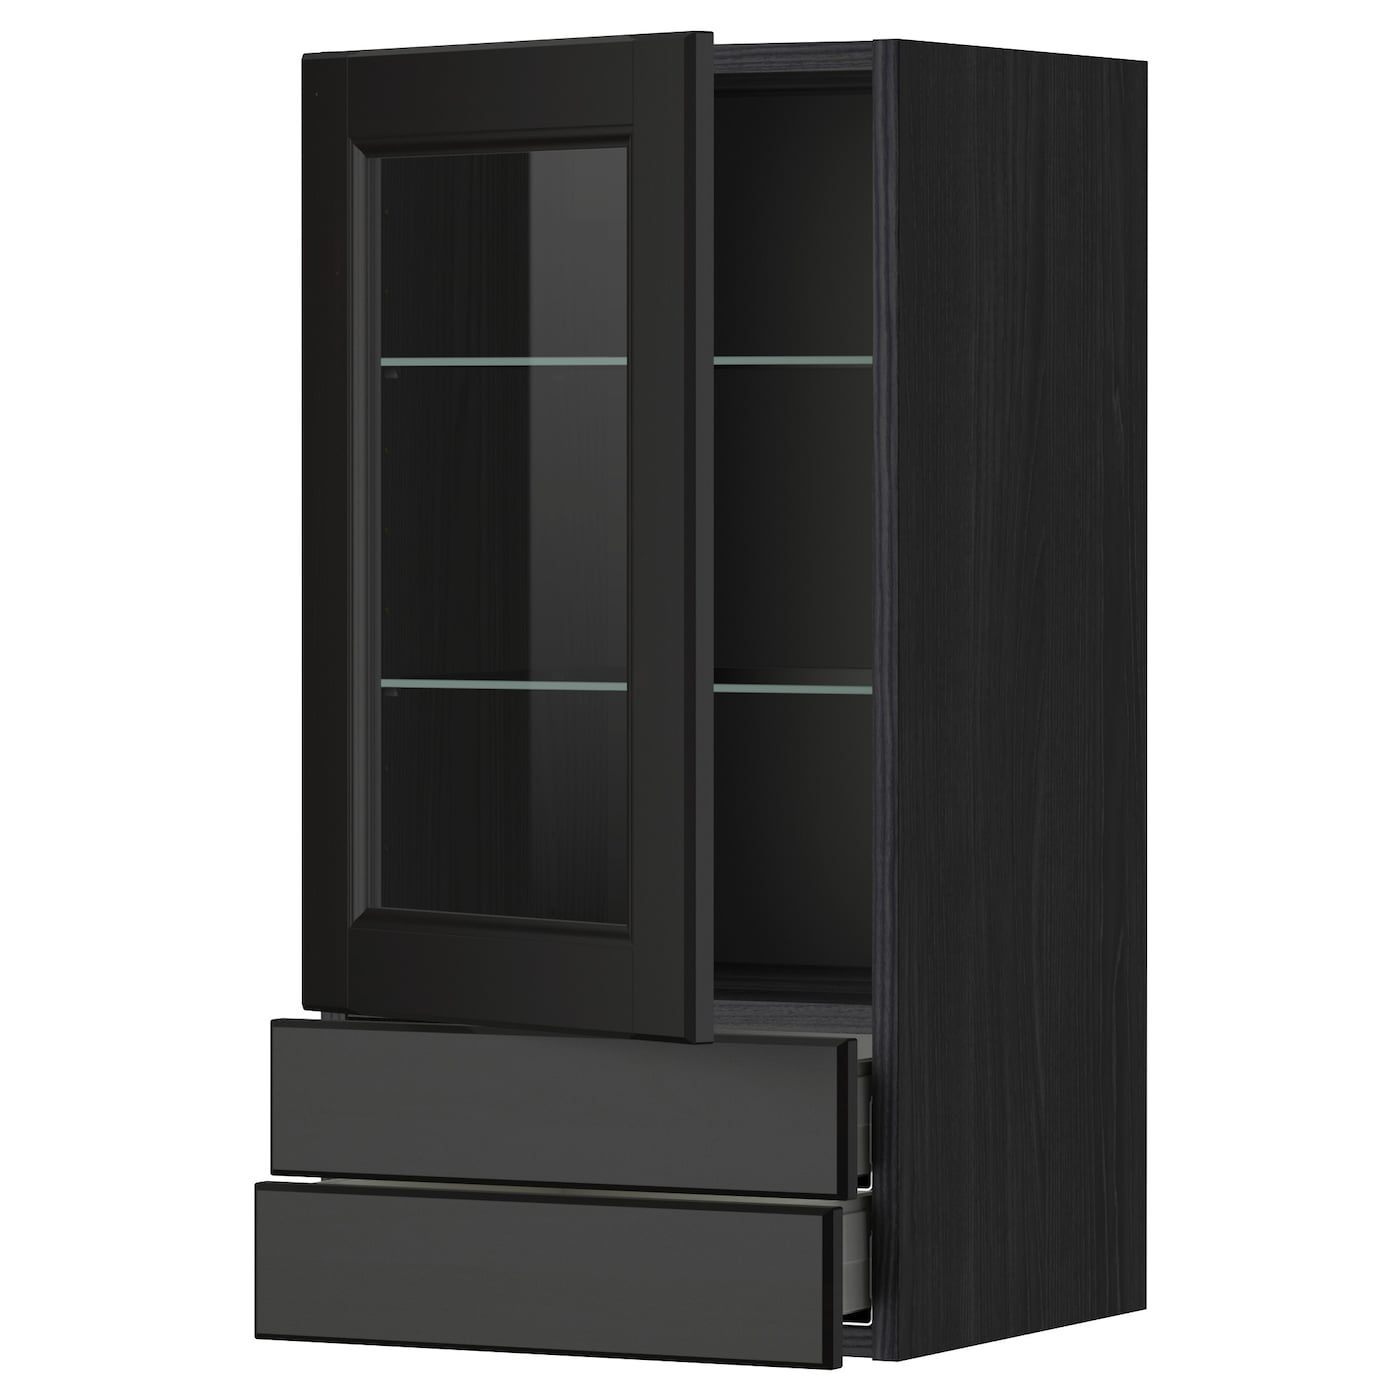 Metod maximera wall cabinet w glass door 2 drawers black for Ikea glass door wall cabinet